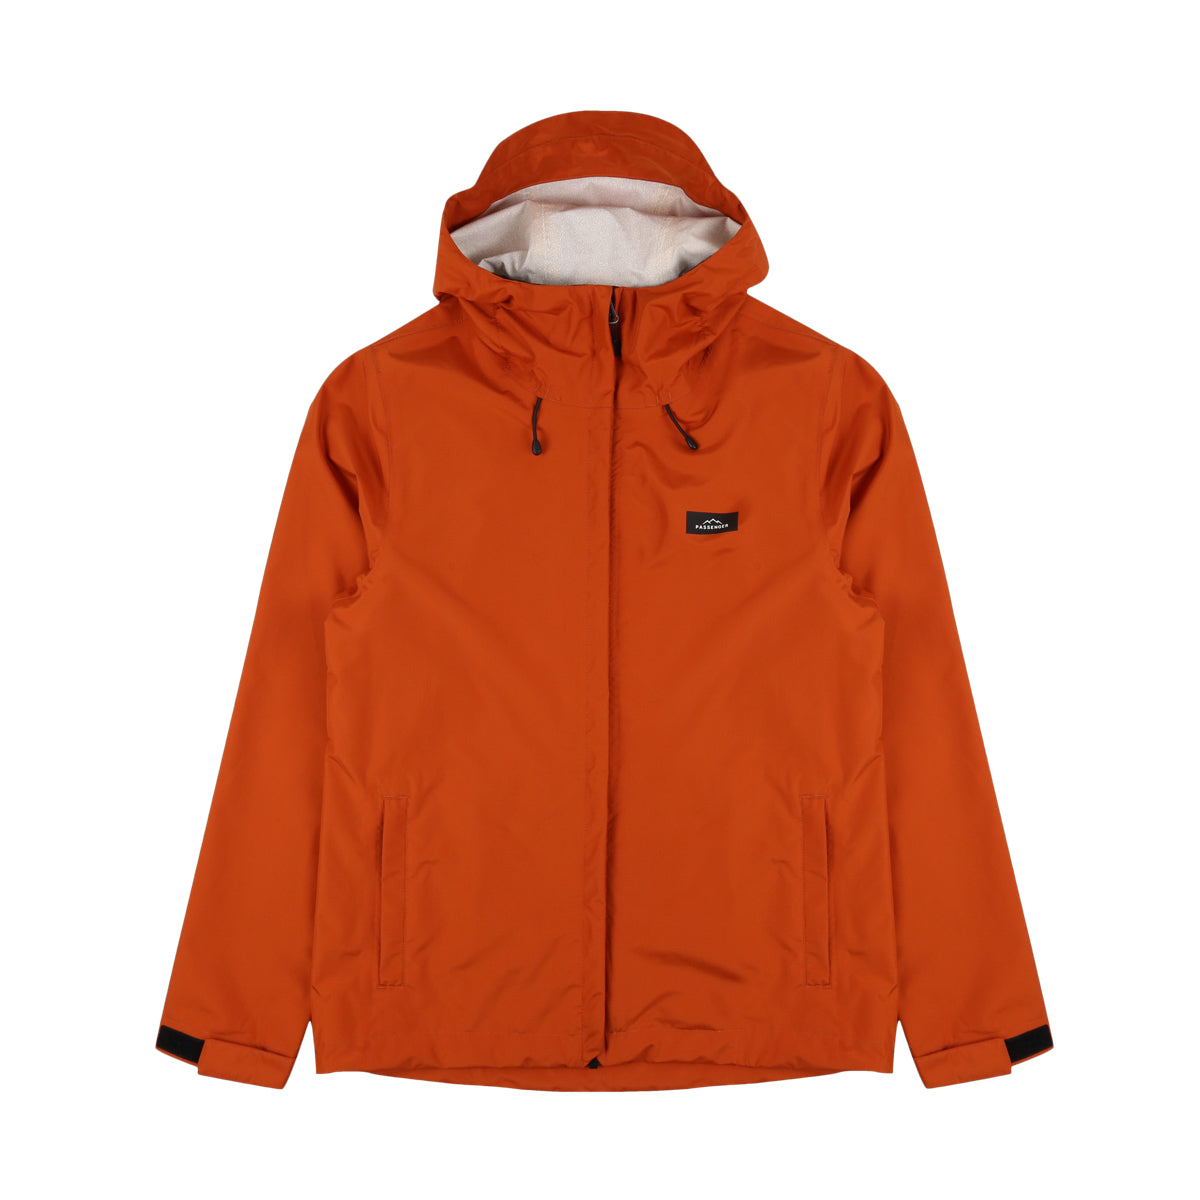 Norcal Waterproof Jacket - Rust image 11